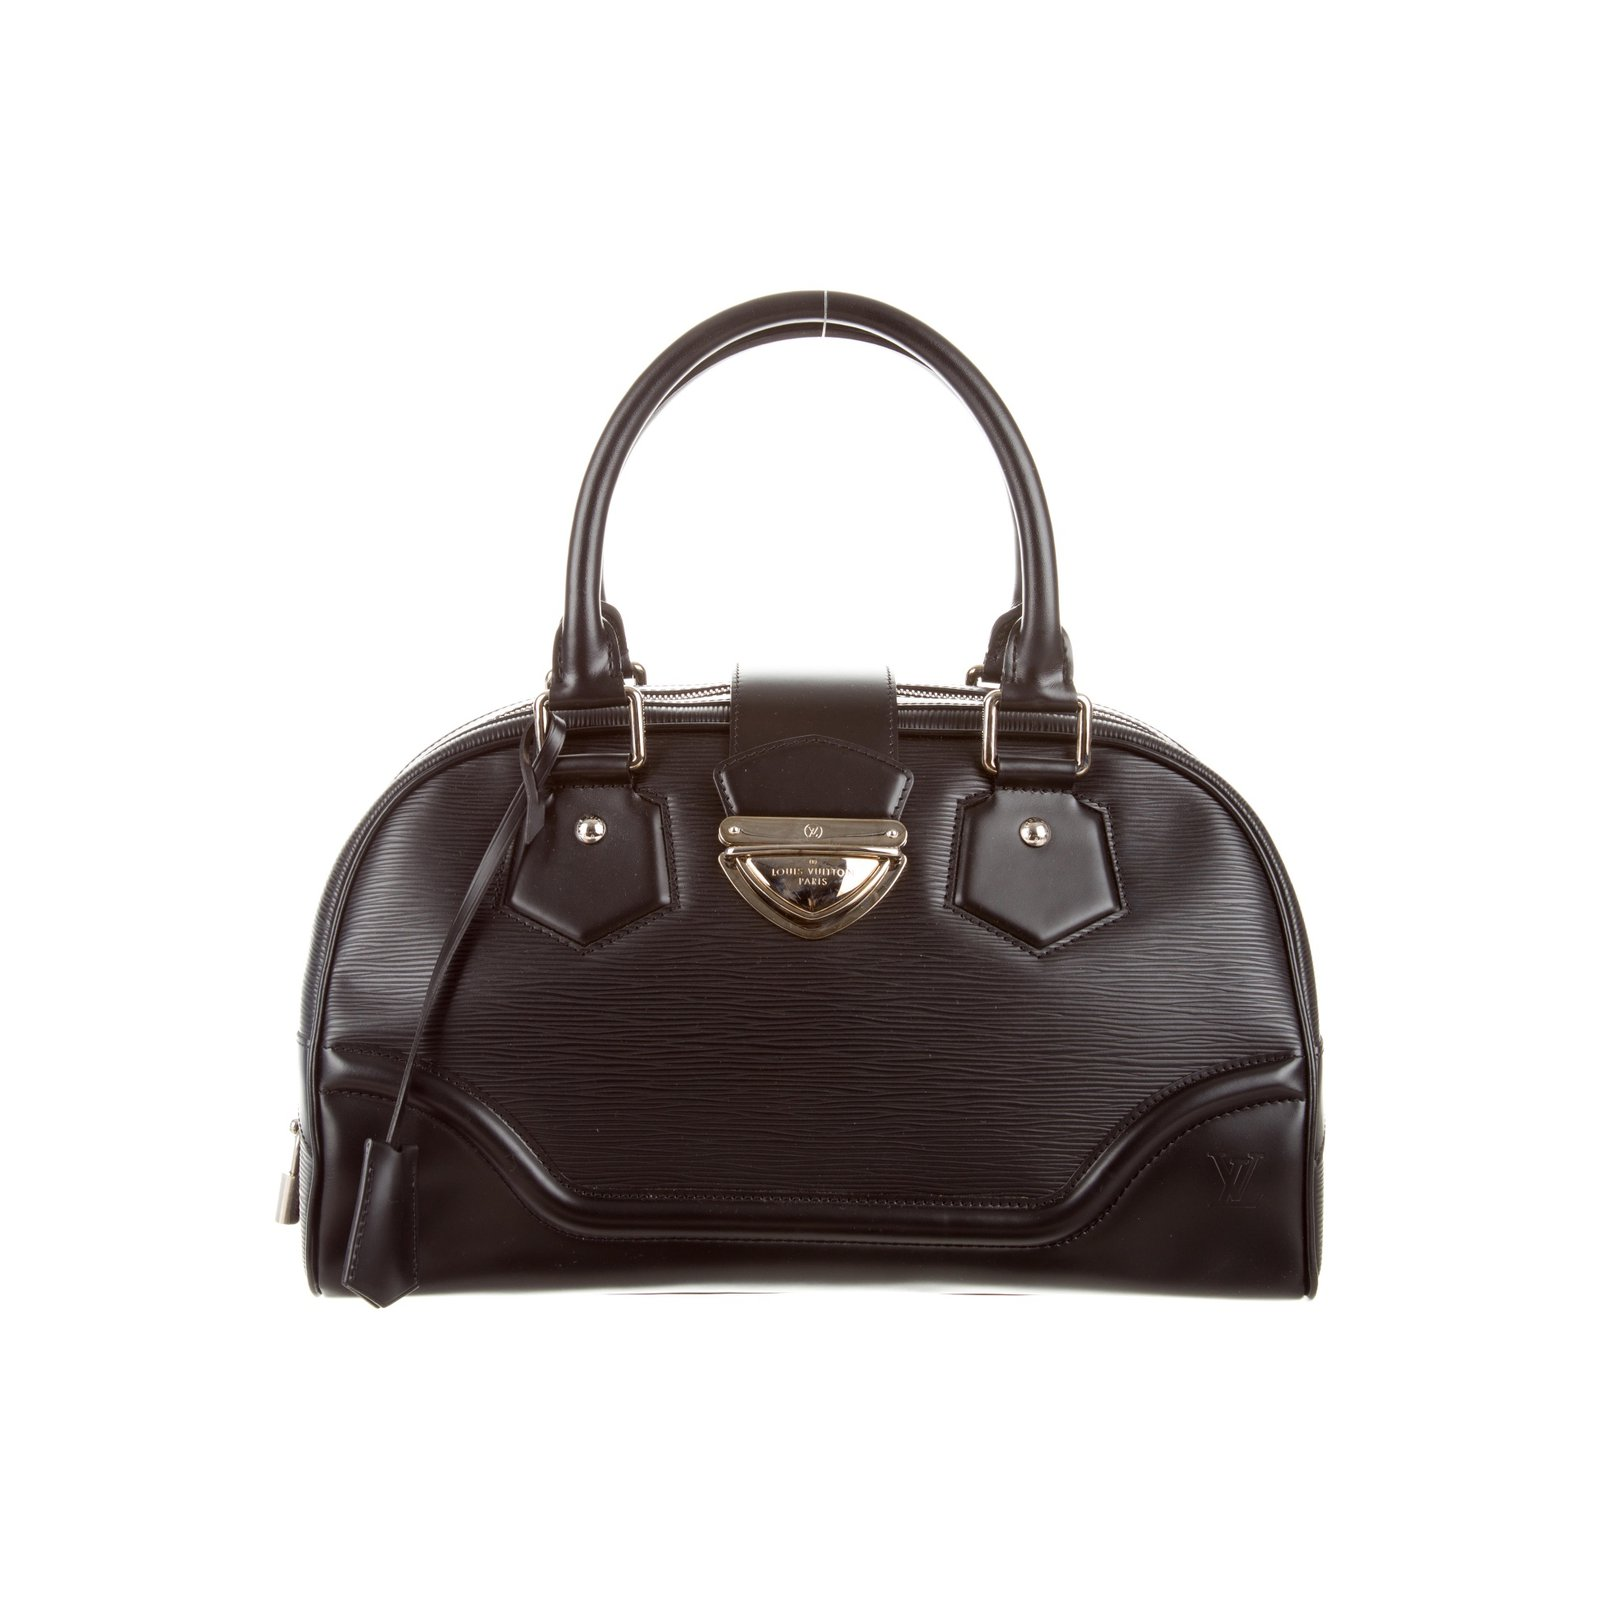 Louis Vuitton Montaigne Gm Epi Leather Bowling Bag Handbags Black Ref 61160